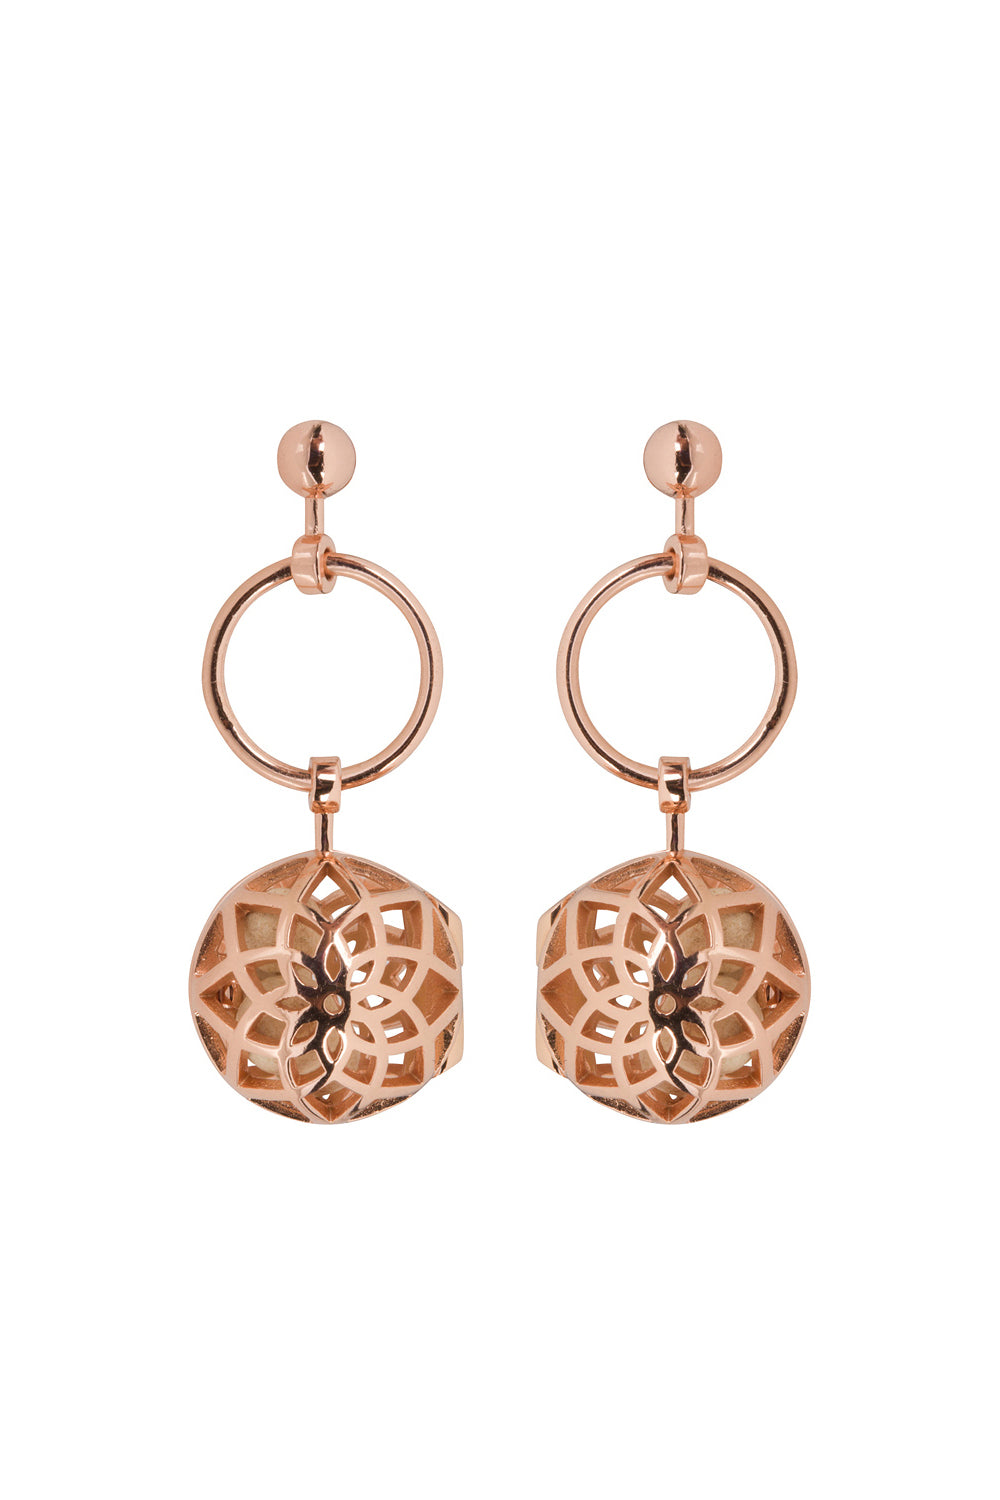 Hoop Drop Fragrance Earrings with Rose Gold Tone Charm